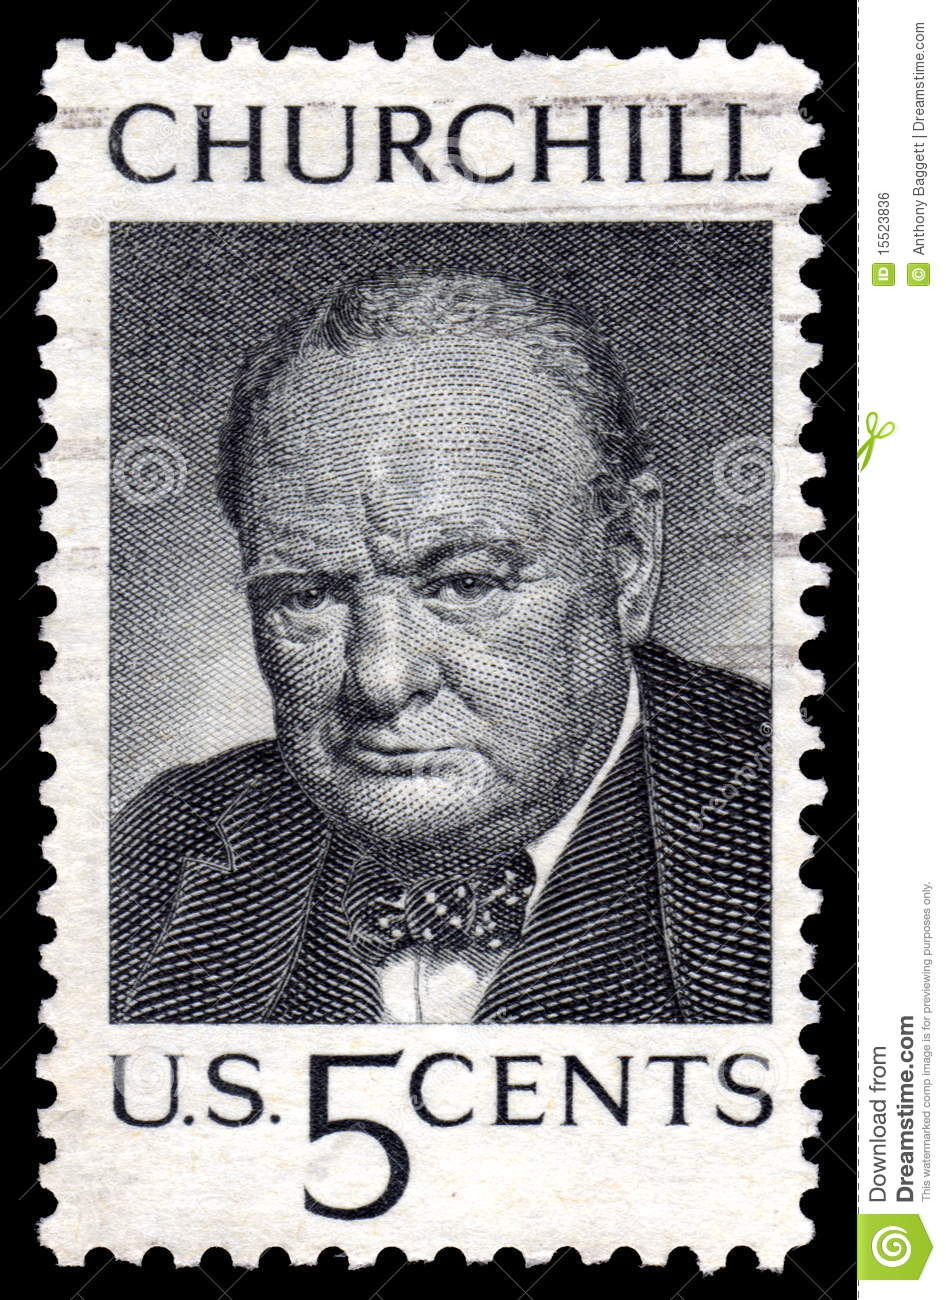 https://thumbs.dreamstime.com/z/vintage-winston-churchill-usa-postage-stamp-15523836.jpg